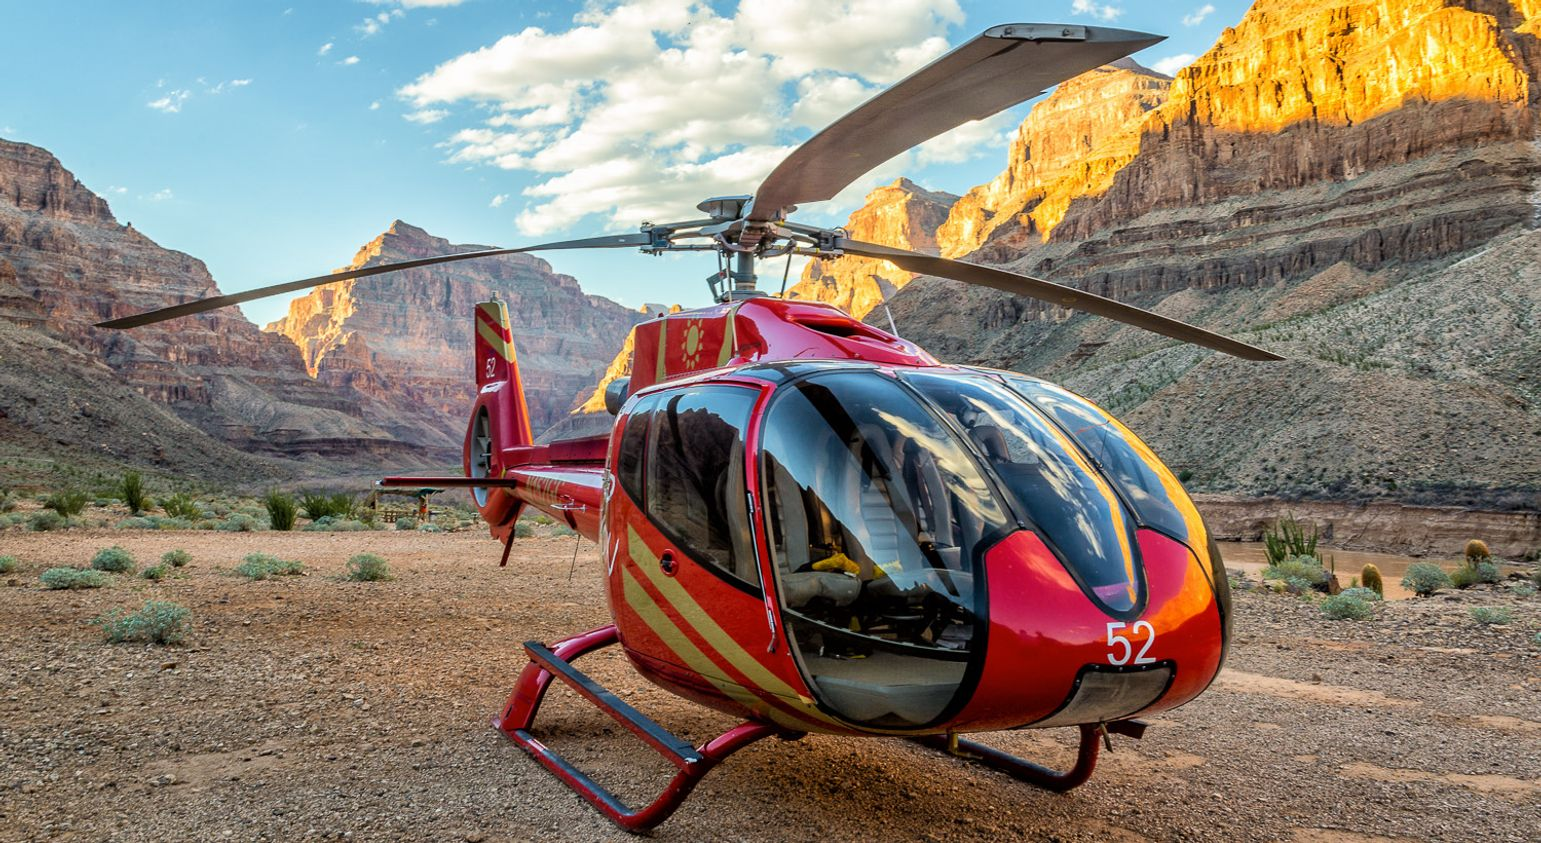 The Grand Canyon floor with a red helicopter landed in the foreground.